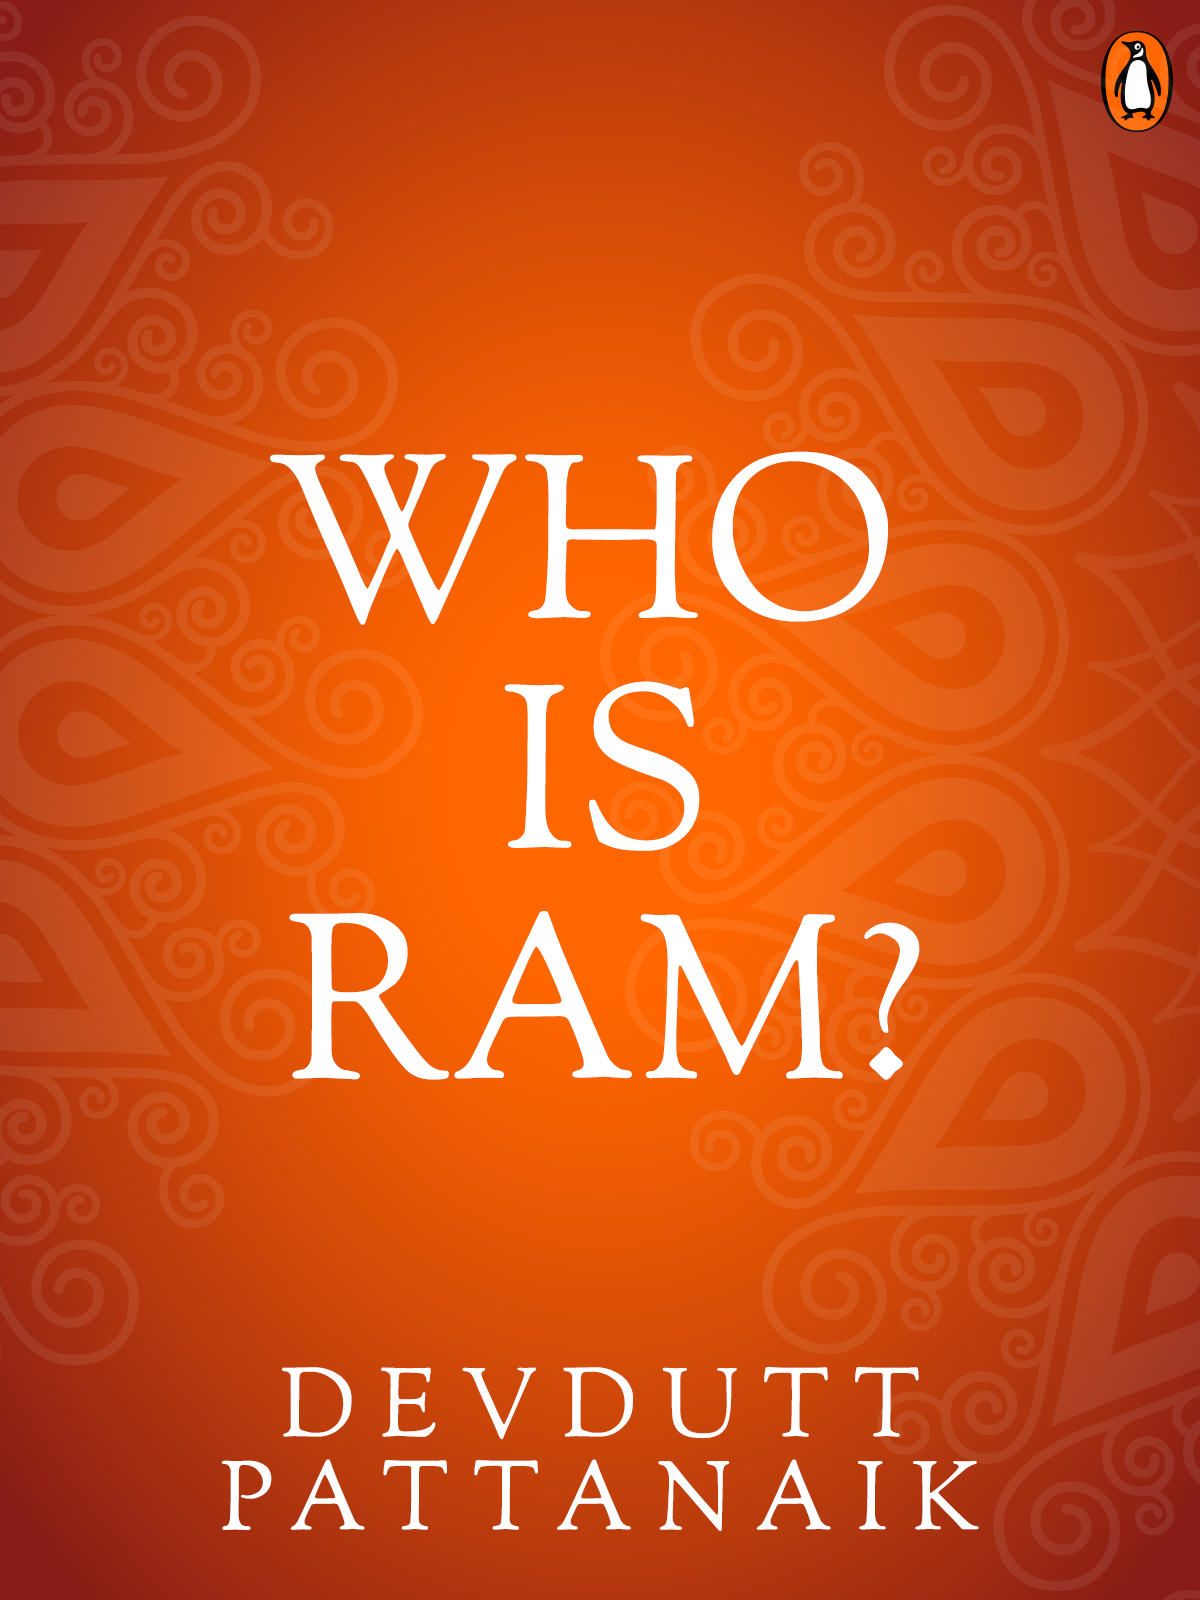 Who is Ram?